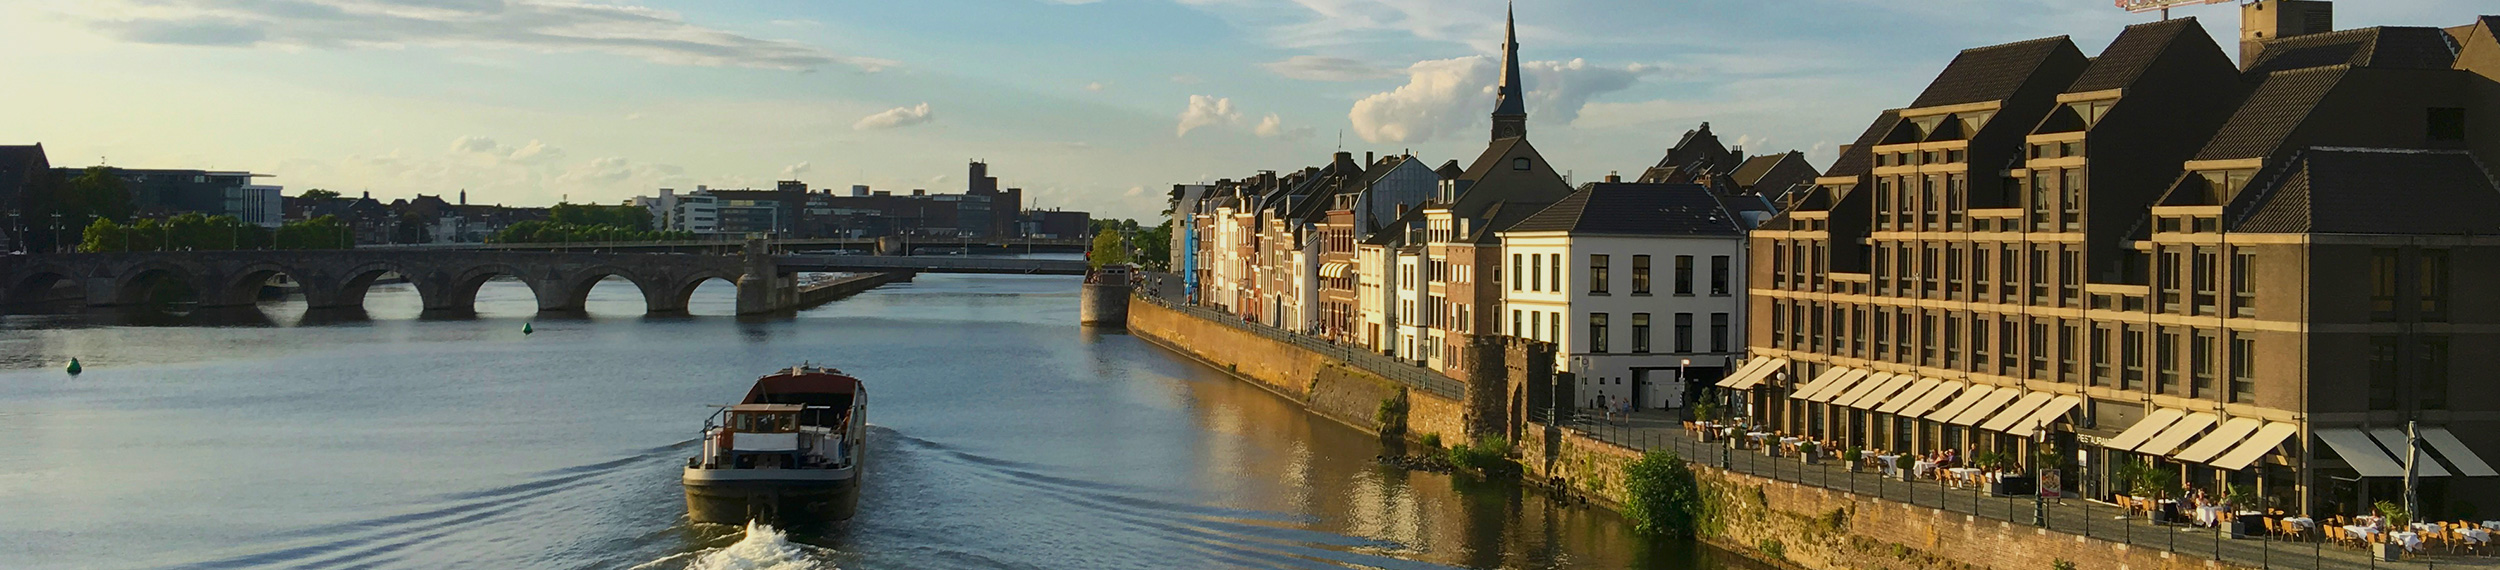 View of Maastricht along the Maas (Meuse) River.